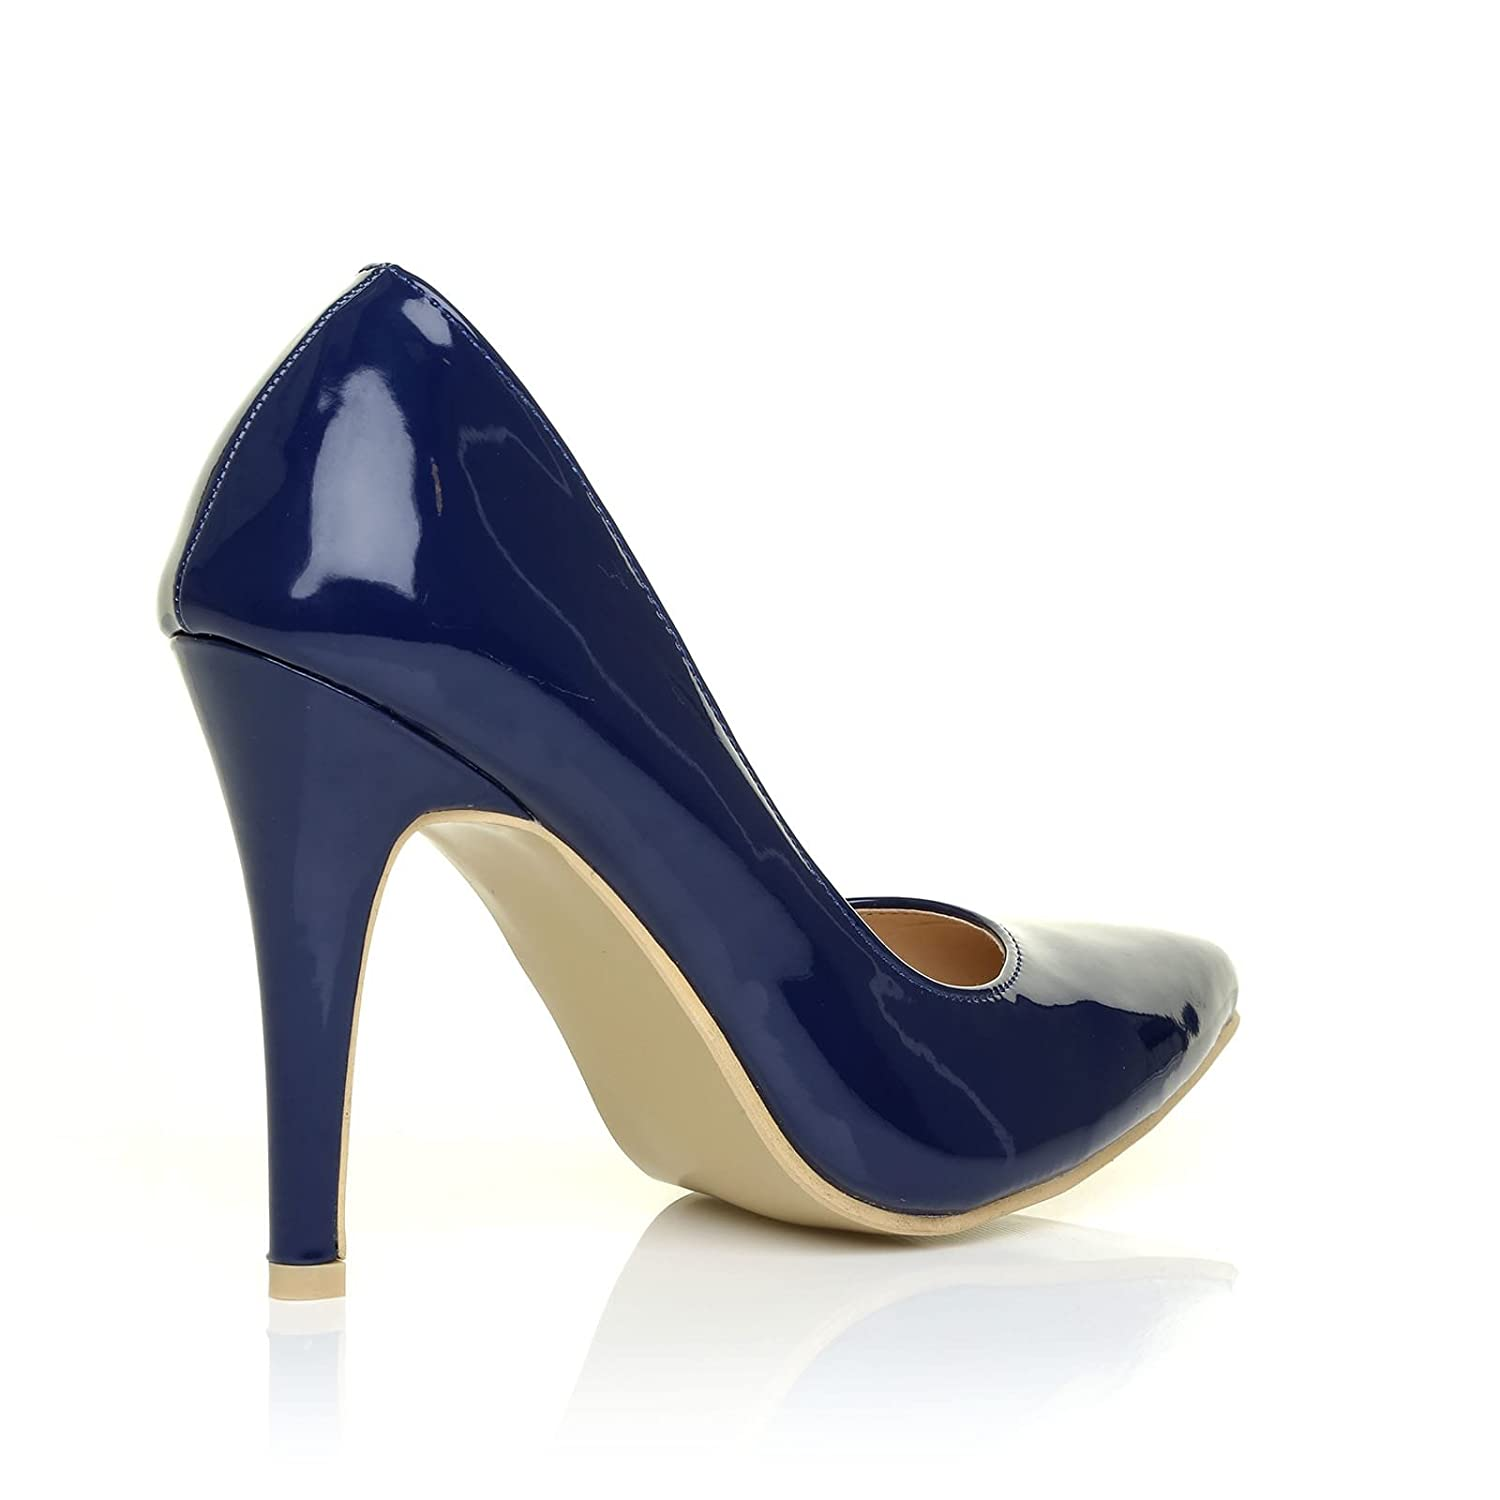 3296f271331 DARCY Navy Patent PU Leather Stilleto High Heel Pointed Court Shoes